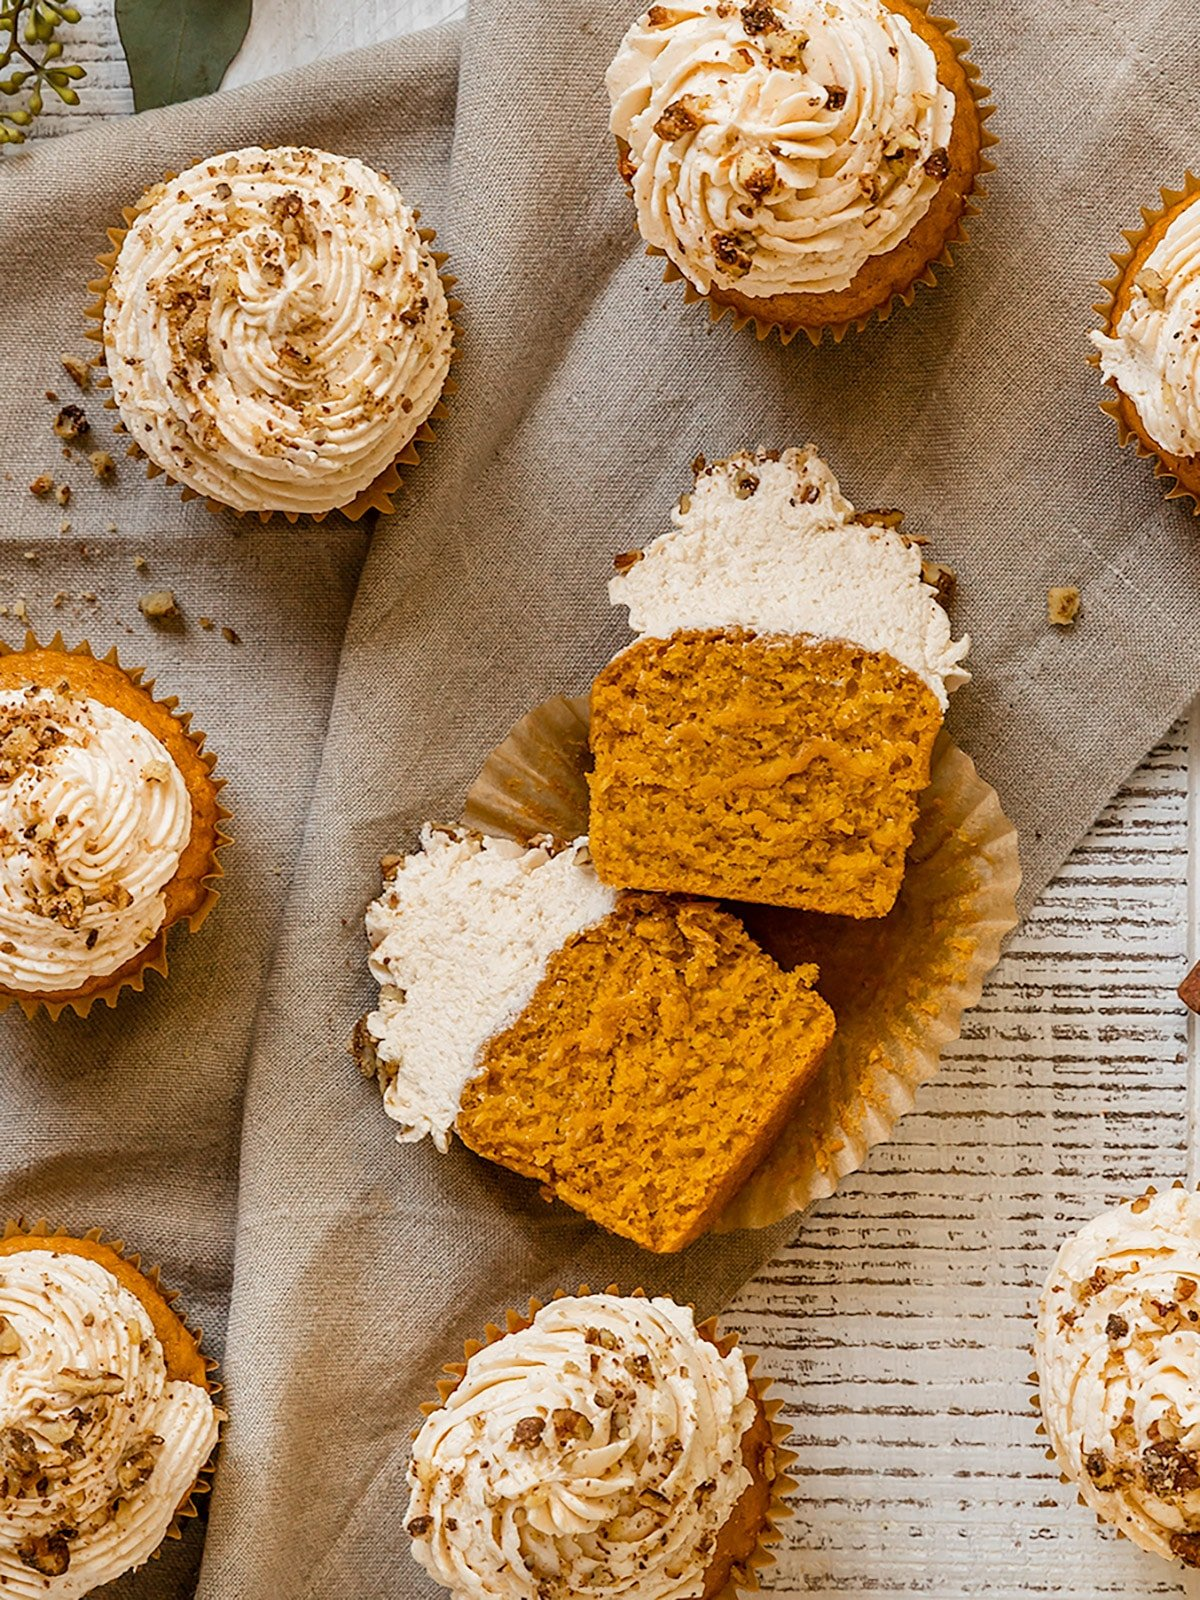 pumpkin cupcake sliced in half to show soft and moist texture inside